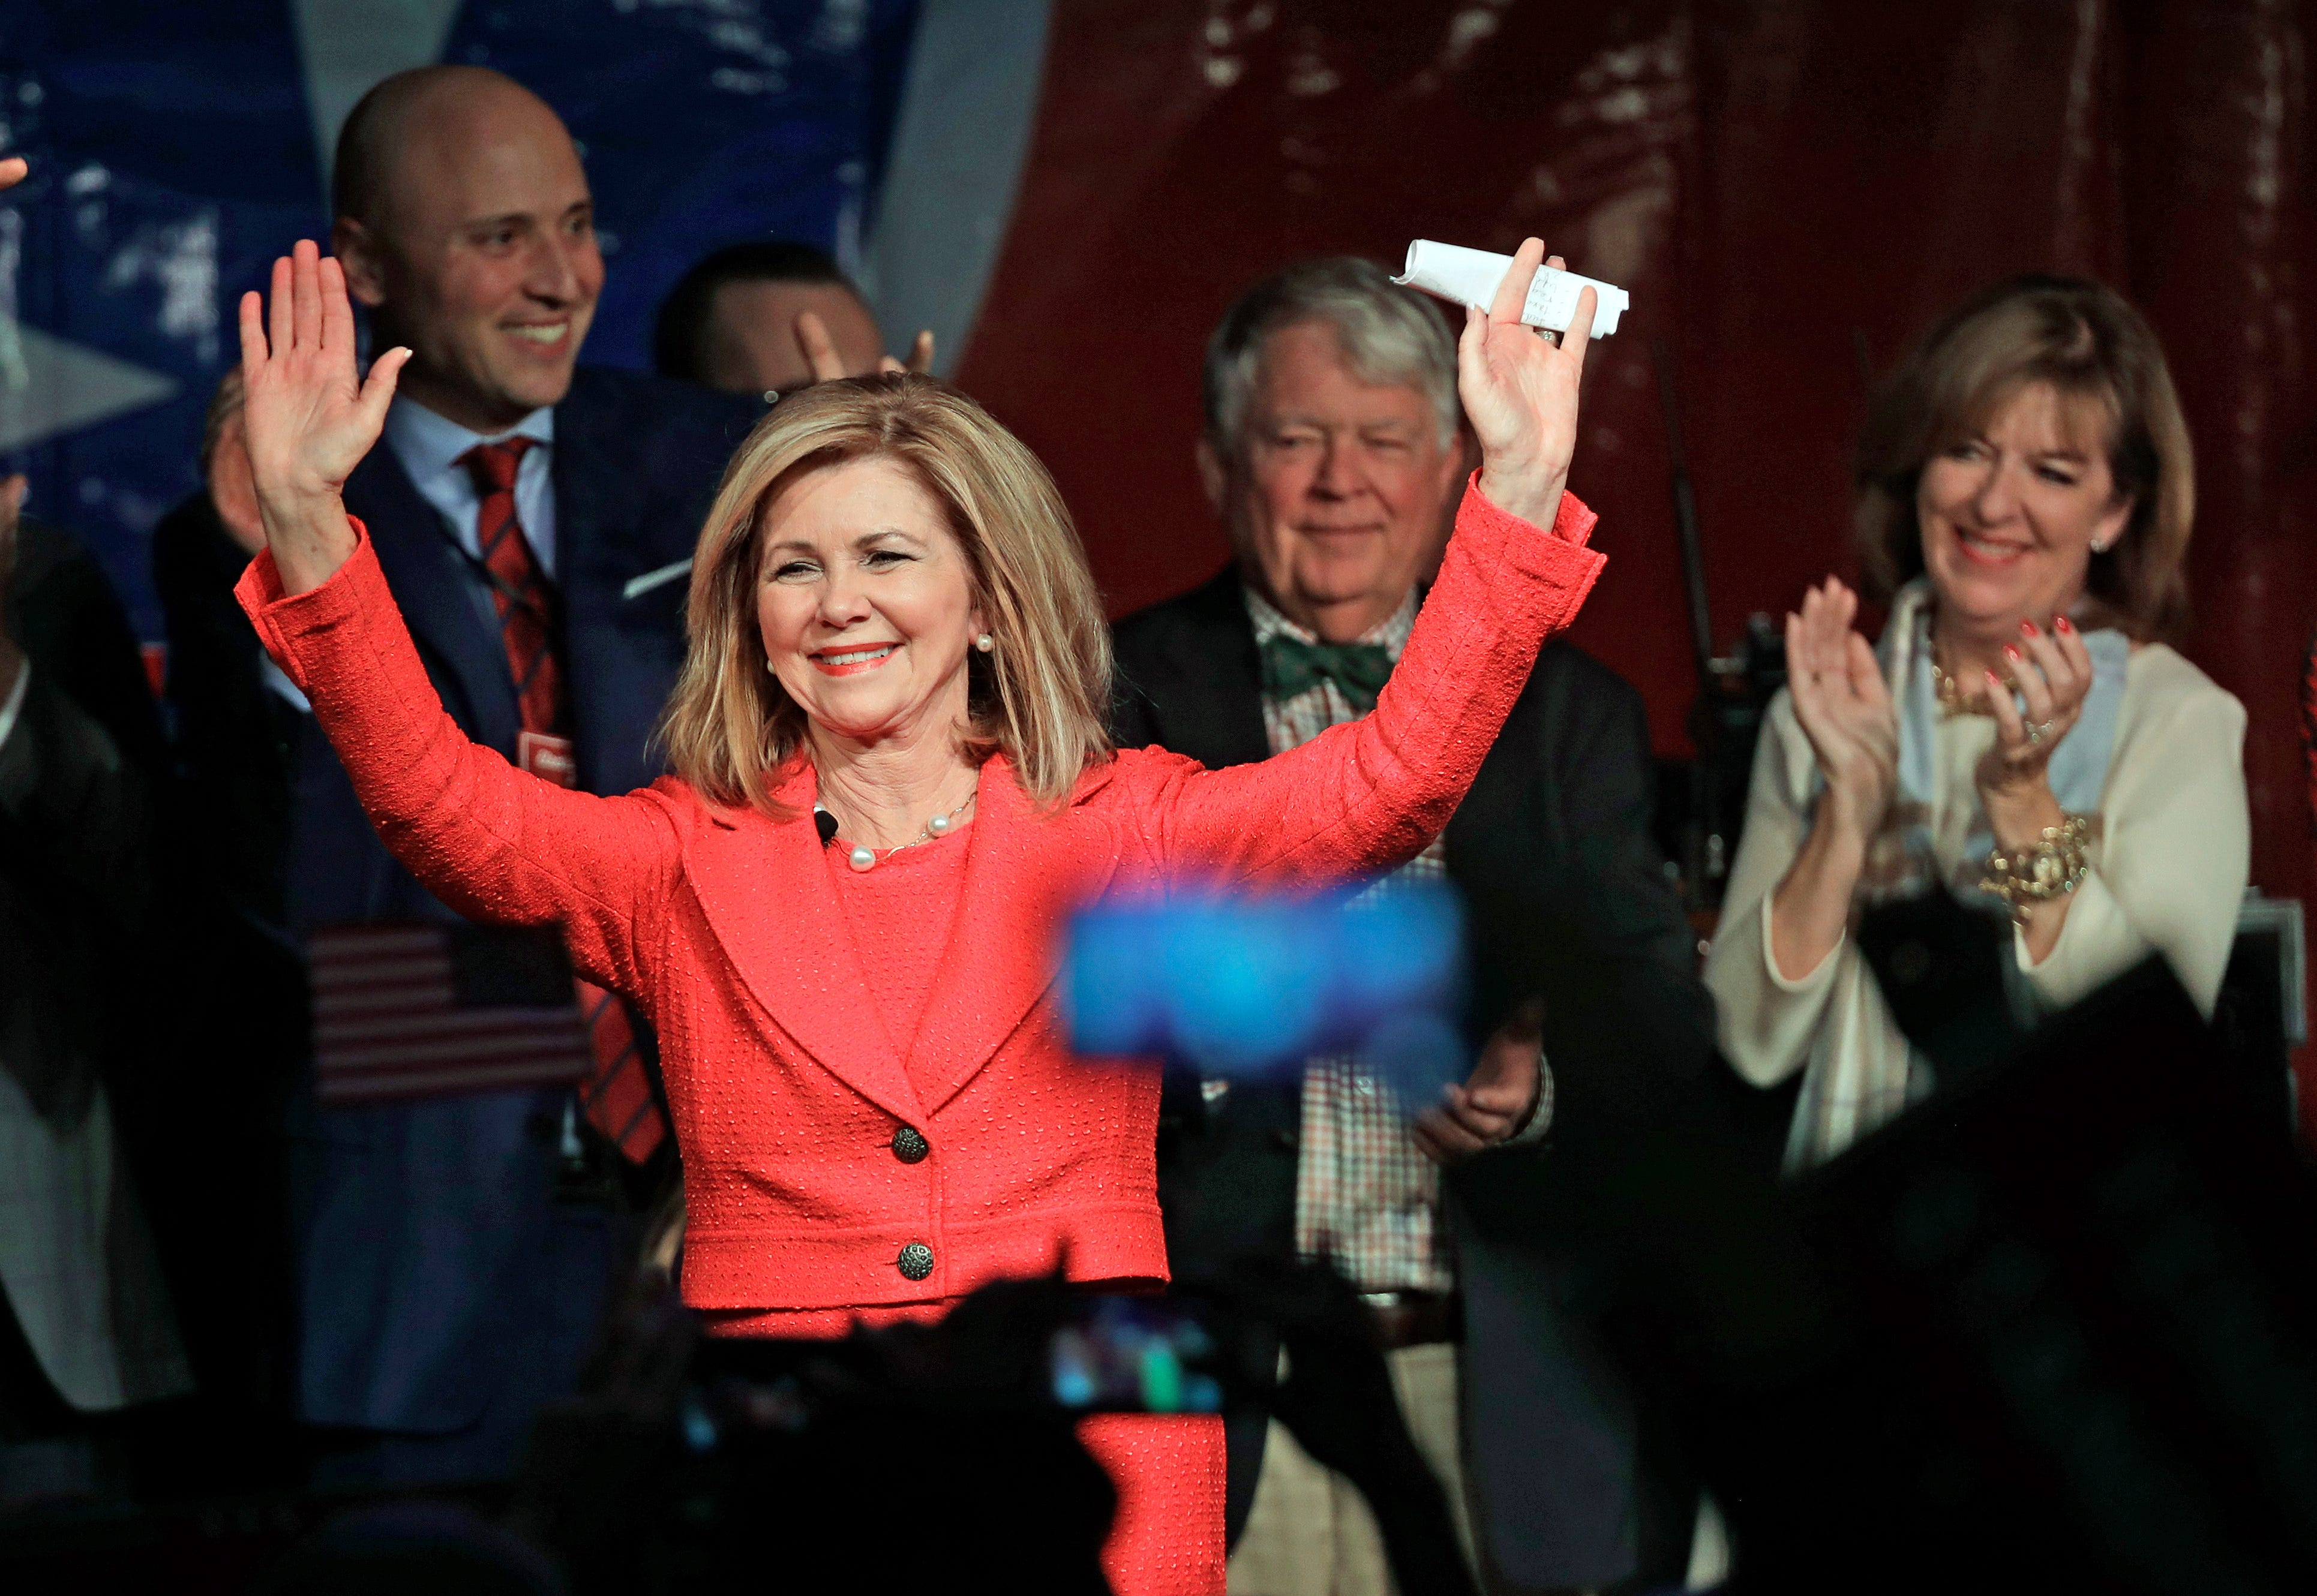 Rep. Marsha Blackburn, R-Tenn., greets supporters after she was declared the winner over former Gov. Phil Bredesen in their race for the U.S. Senate Tuesday, Nov. 6, 2018, in Franklin, Tenn. (AP Photo/Mark Humphrey) ORG XMIT: TNMH144